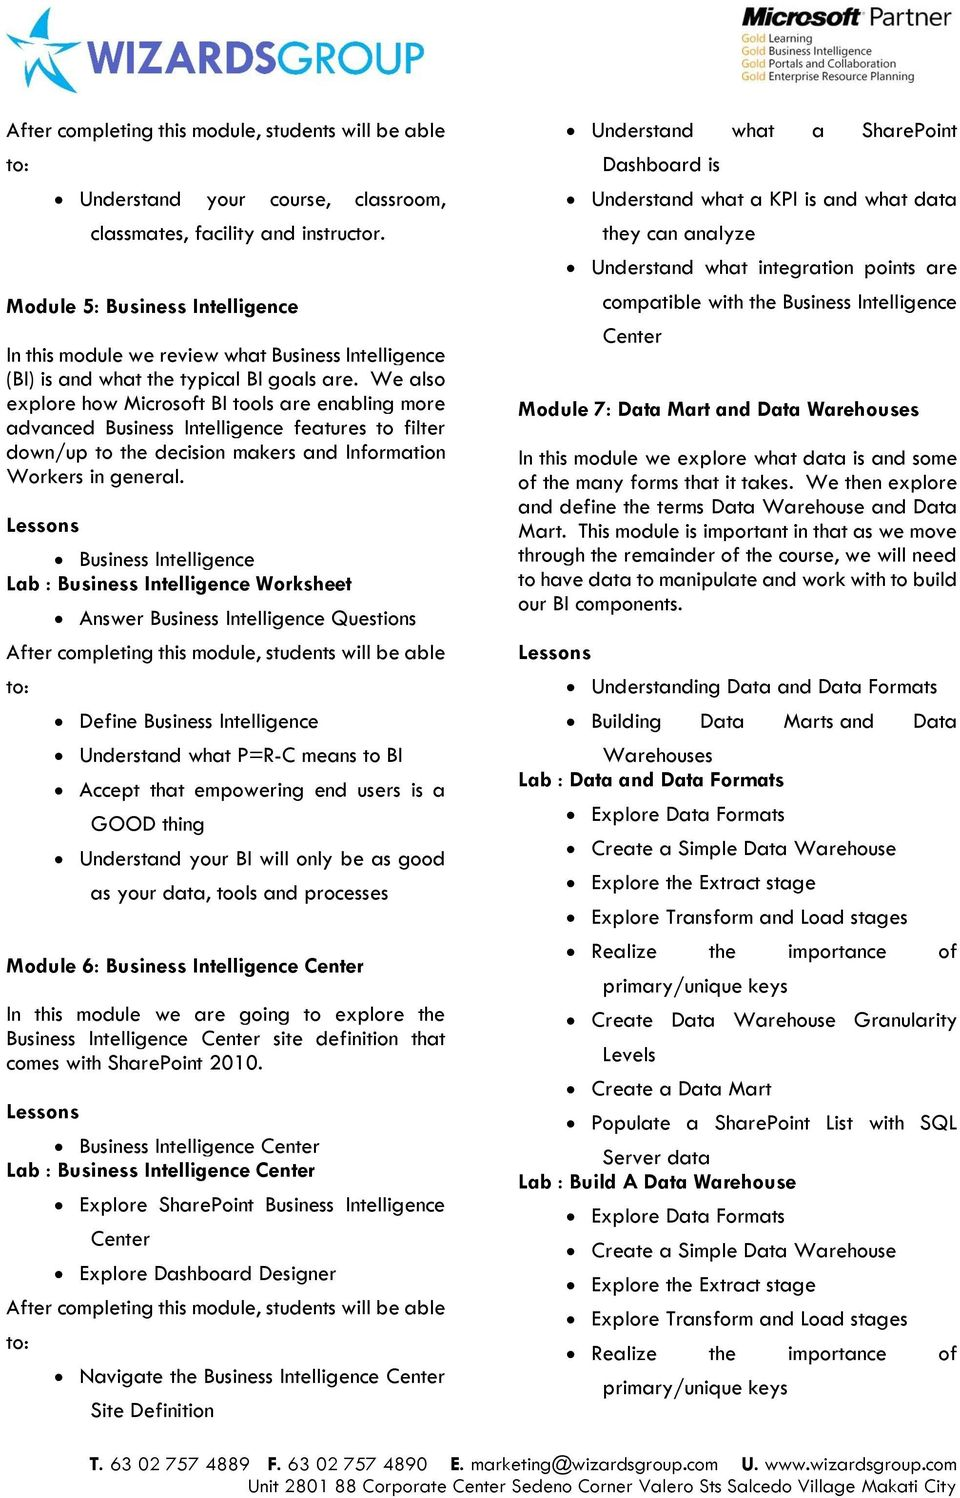 Business Intelligence Lab : Business Intelligence Worksheet Answer Business Intelligence Questions Define Business Intelligence Understand what P=R-C means to BI Accept that empowering end users is a